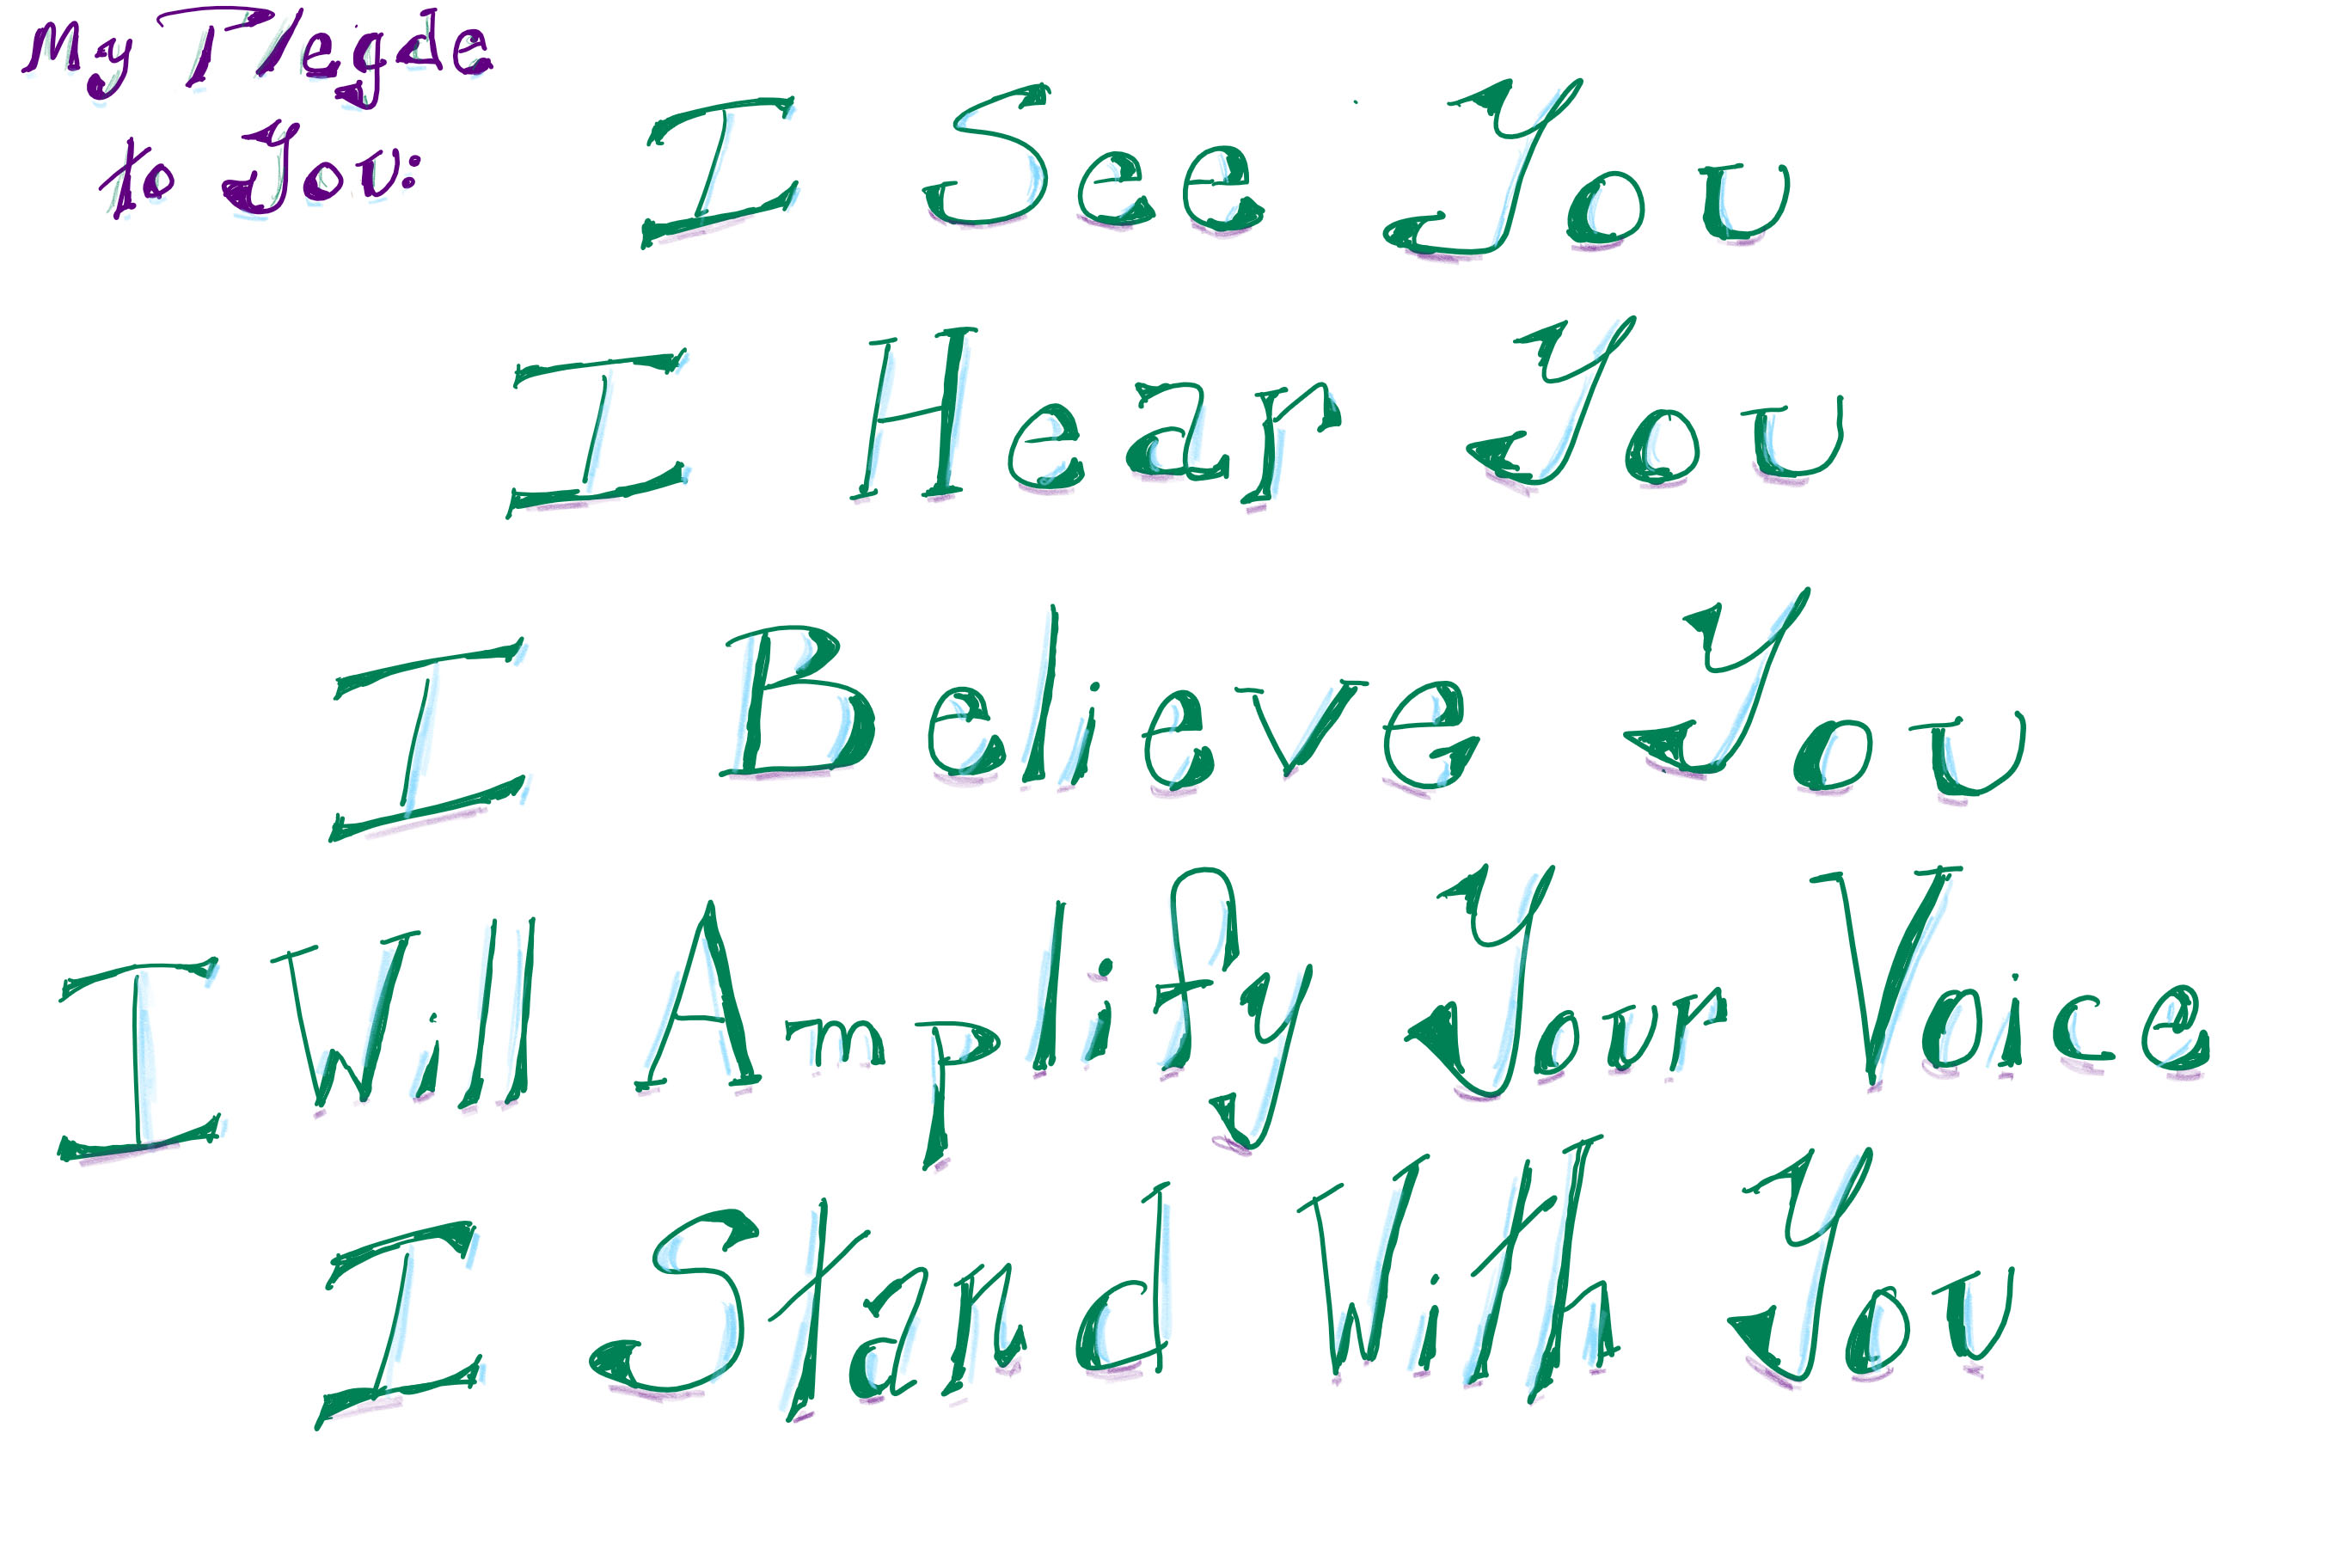 My pledge to you: I see you. I hear you. I believe you. I will amplify your voice. I stand with you.